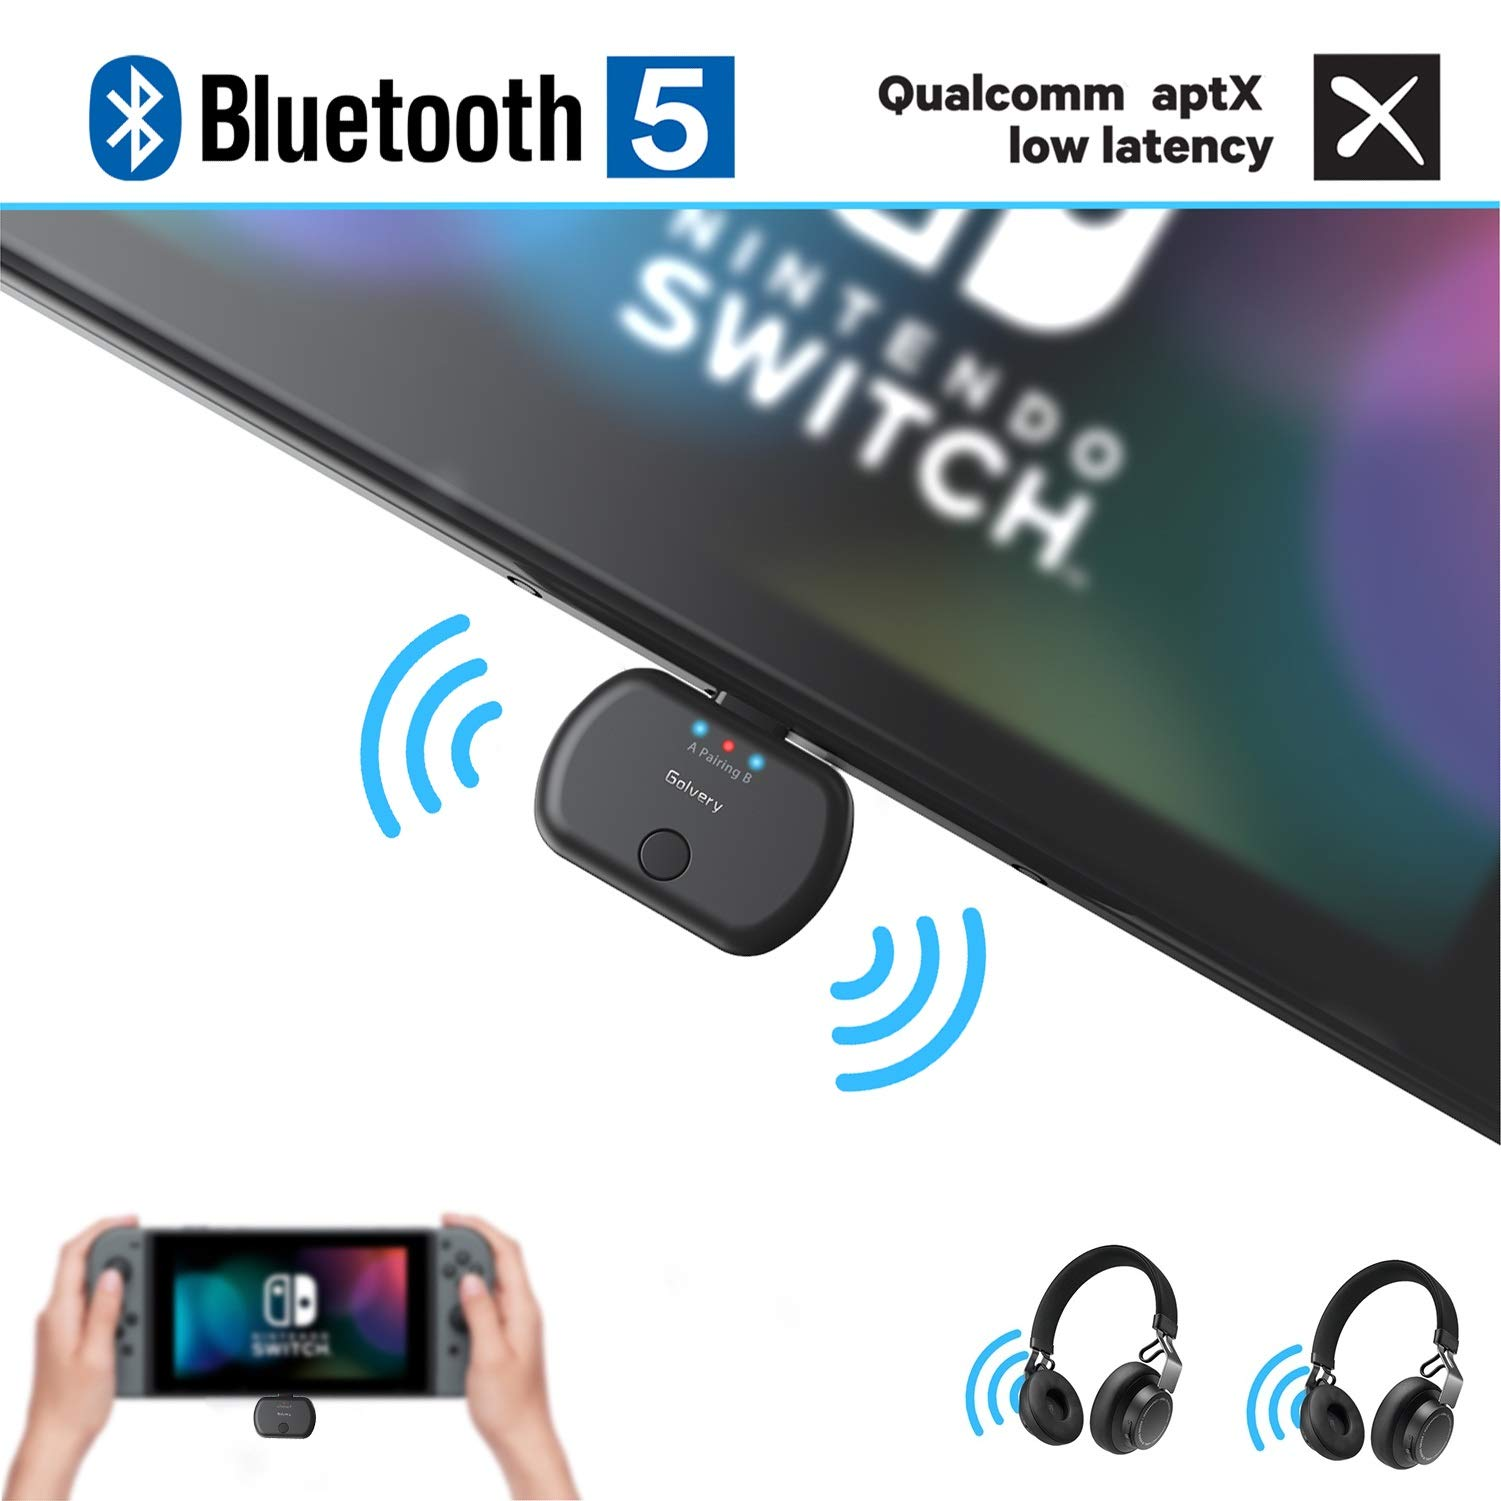 Golvery Wireless Audio Adapter for Nintendo Switch & PC, Type C/USB Bluetooth 5.0 Transmitter, Plug & Play, No Sound Lag, Pass-Through PD High Speed Charging, Support In Game Voice Chat by Golvery